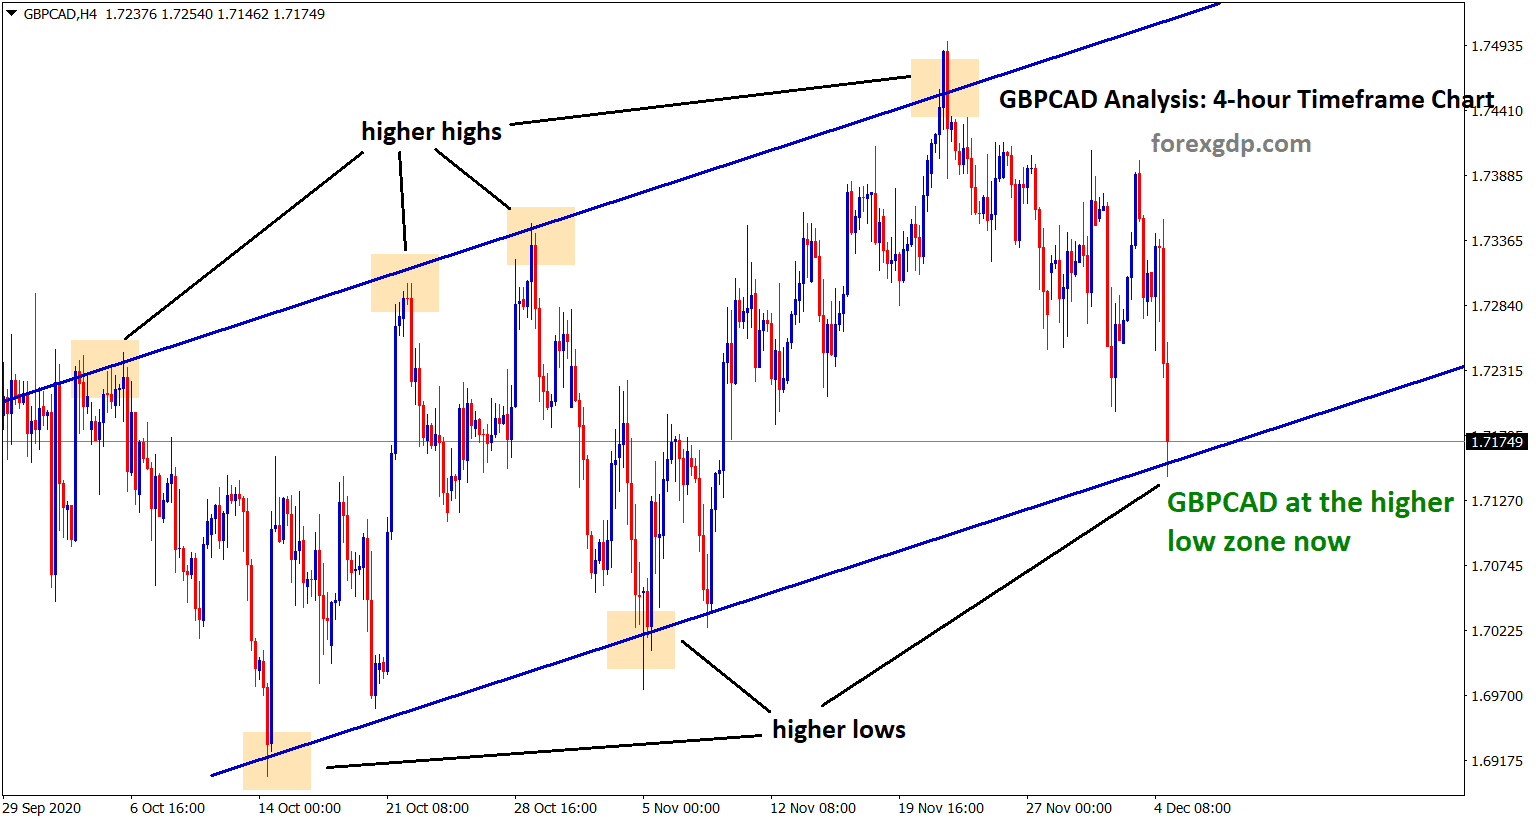 gbpcad at the high low zone now in an up trend ine